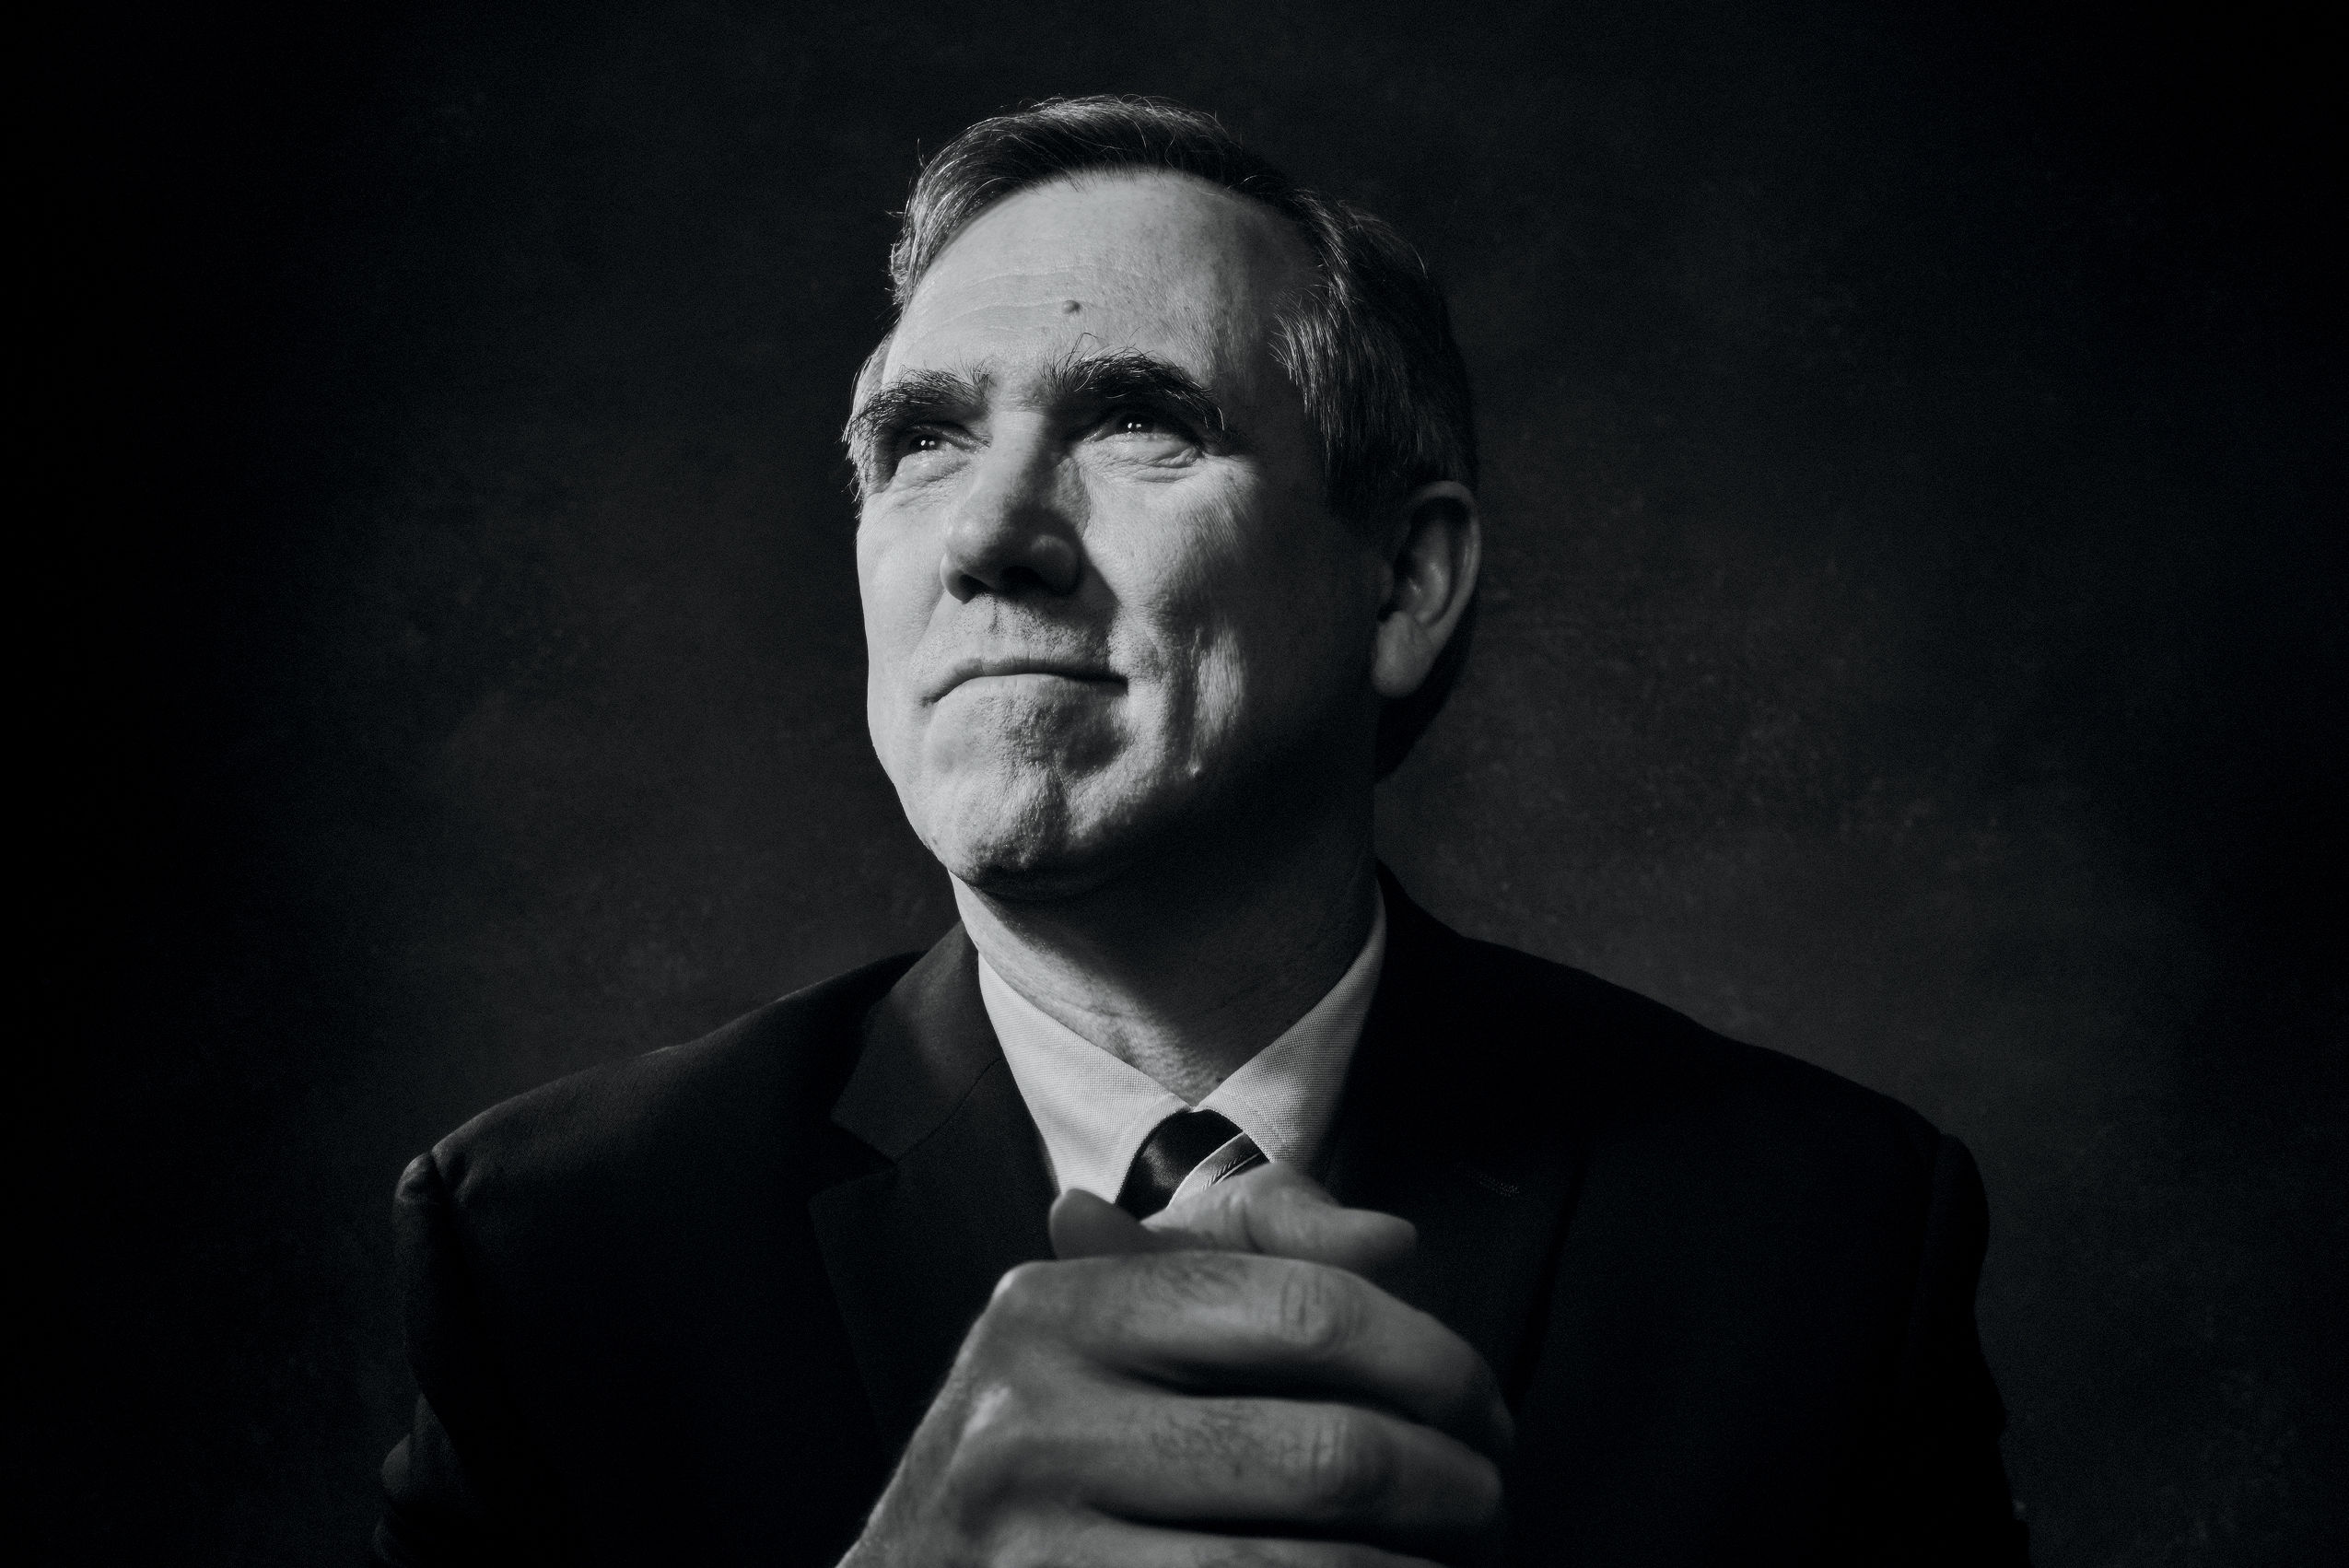 Jeff merkley nxtk0k